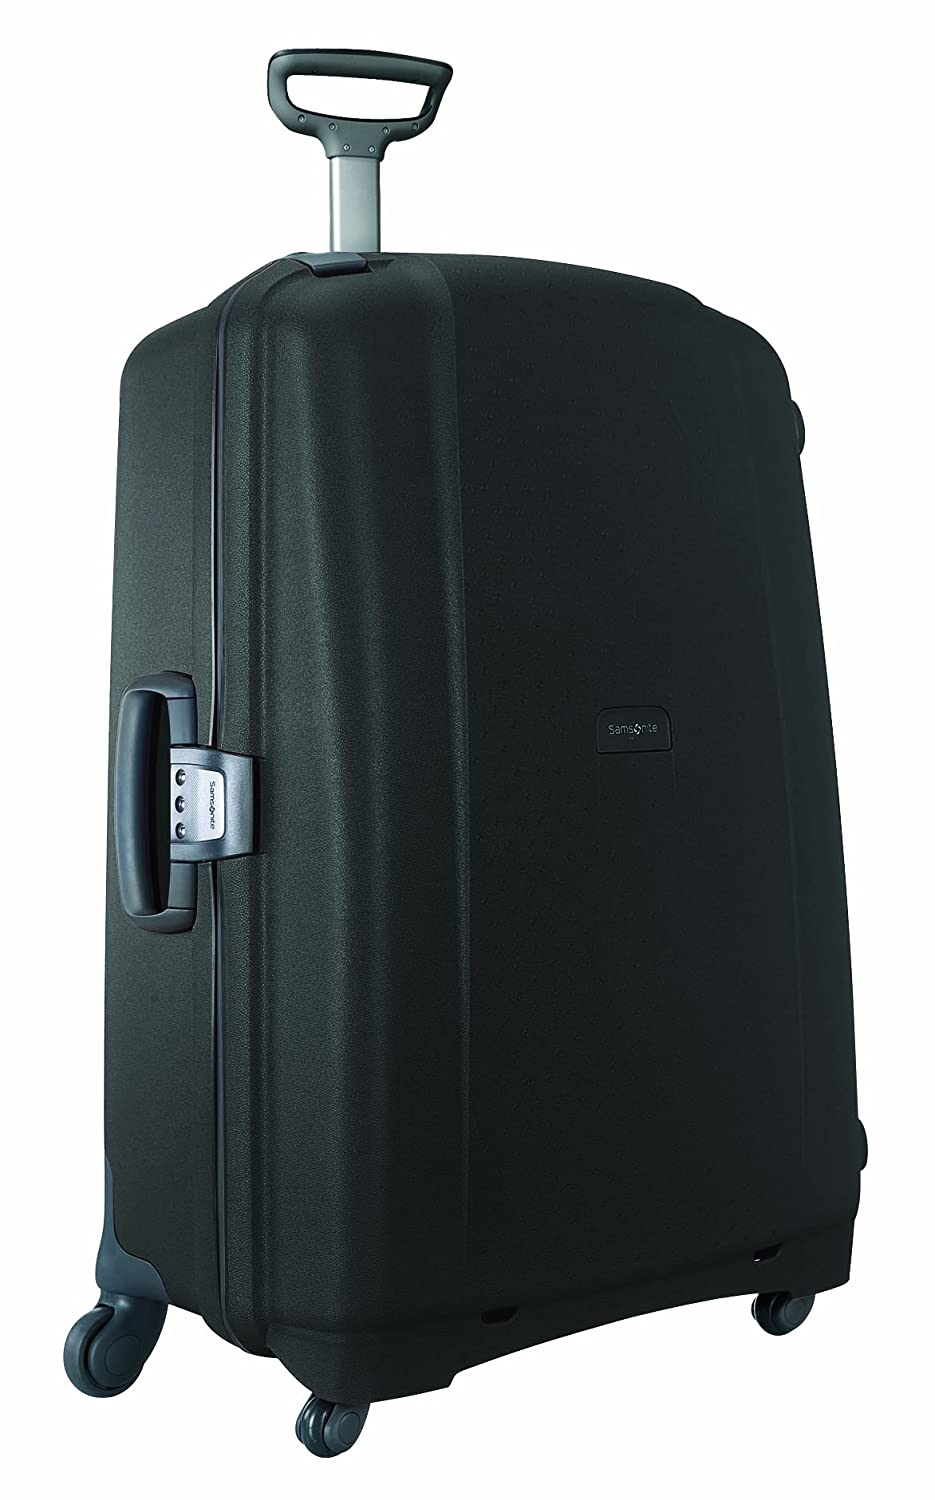 Checked-in suitcase